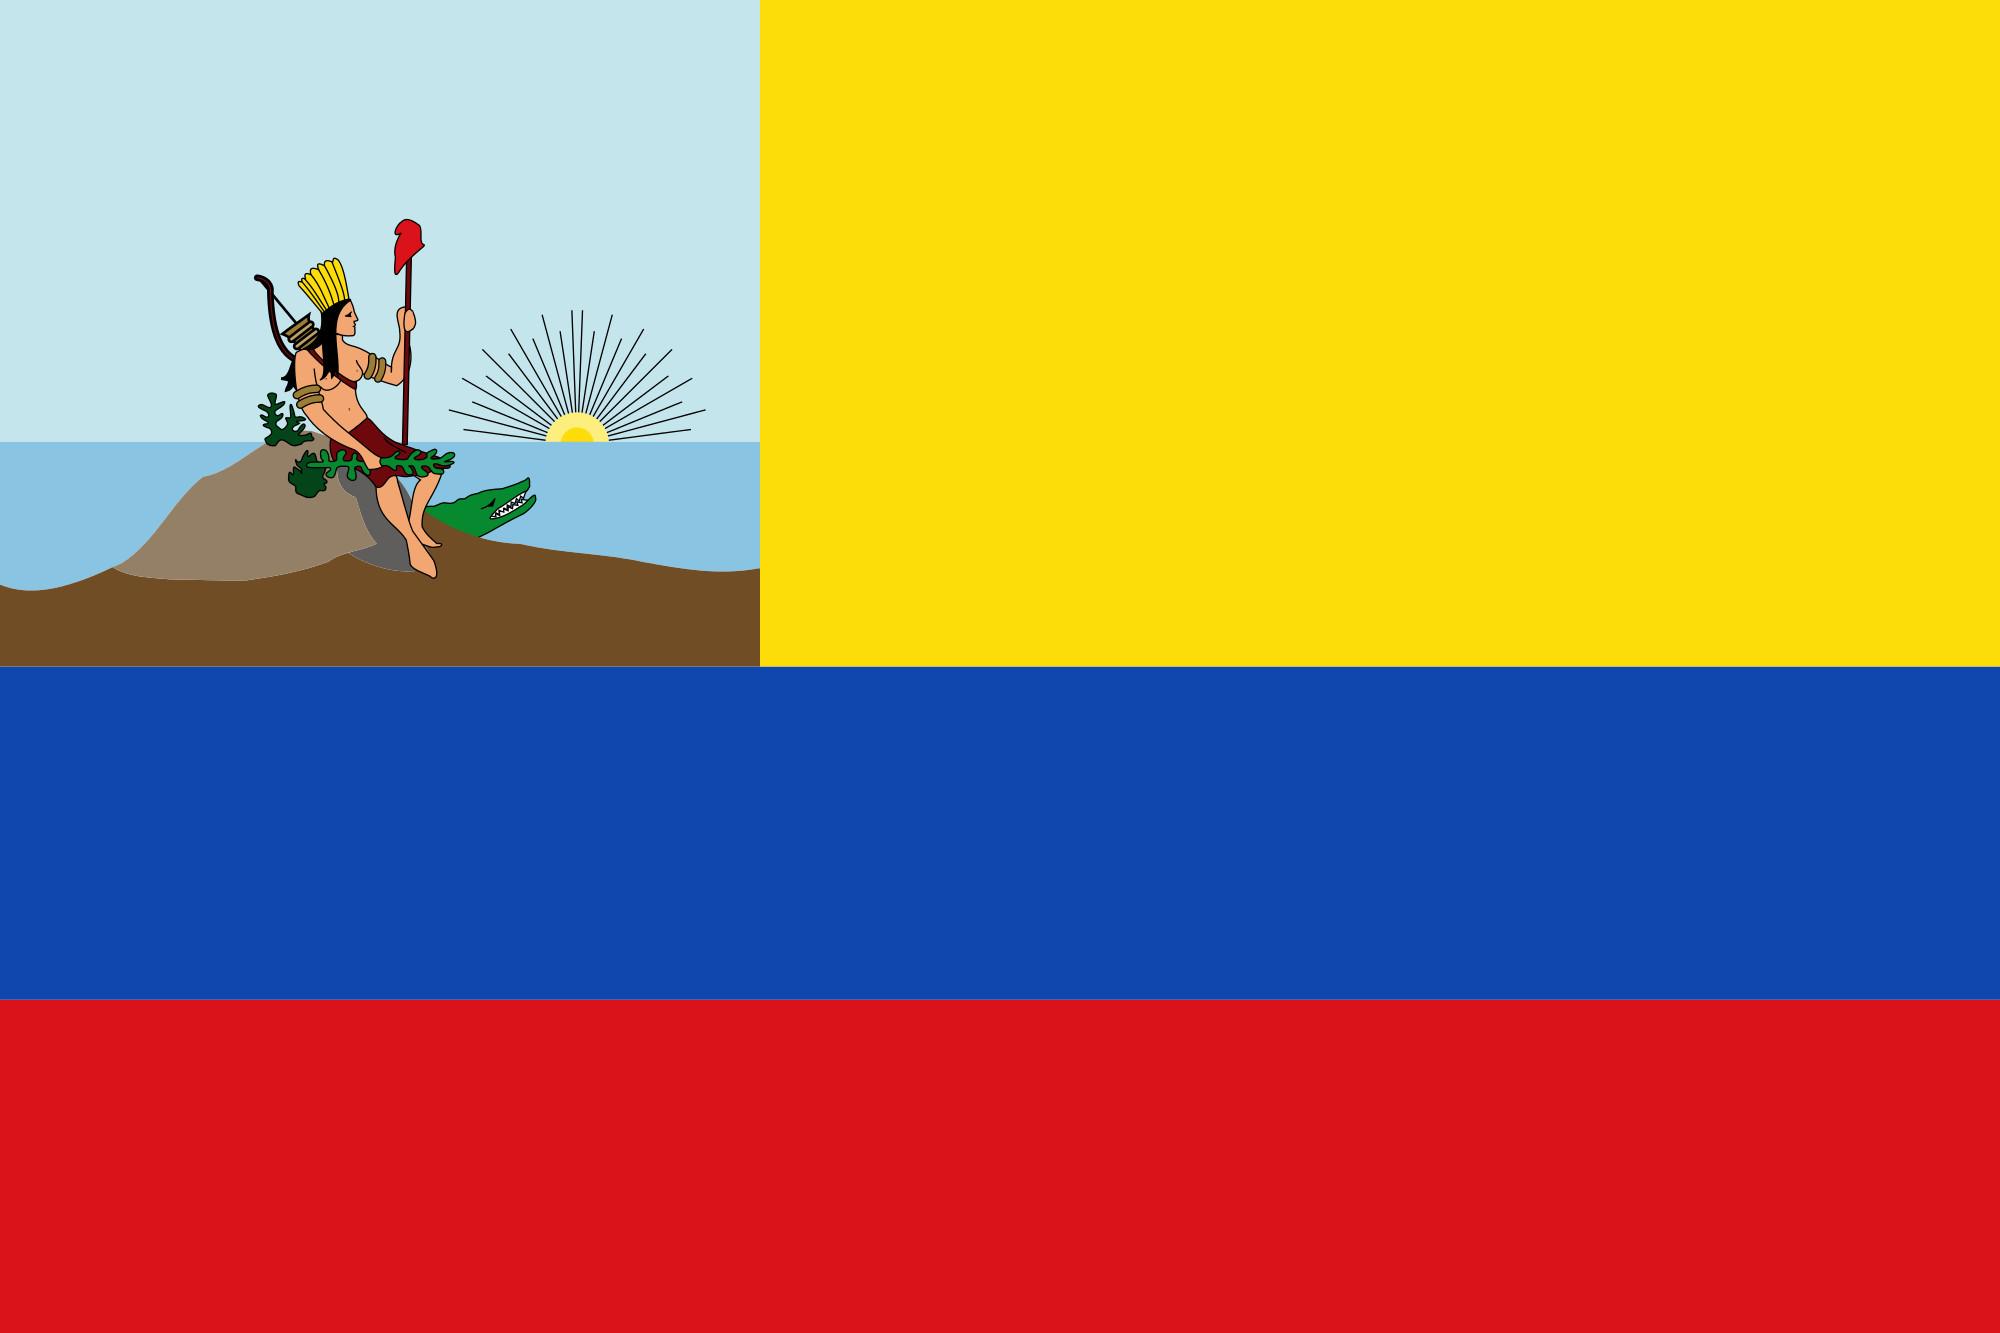 Res: 2000x1333, Flag Of Venezuela Pics, Misc Collection